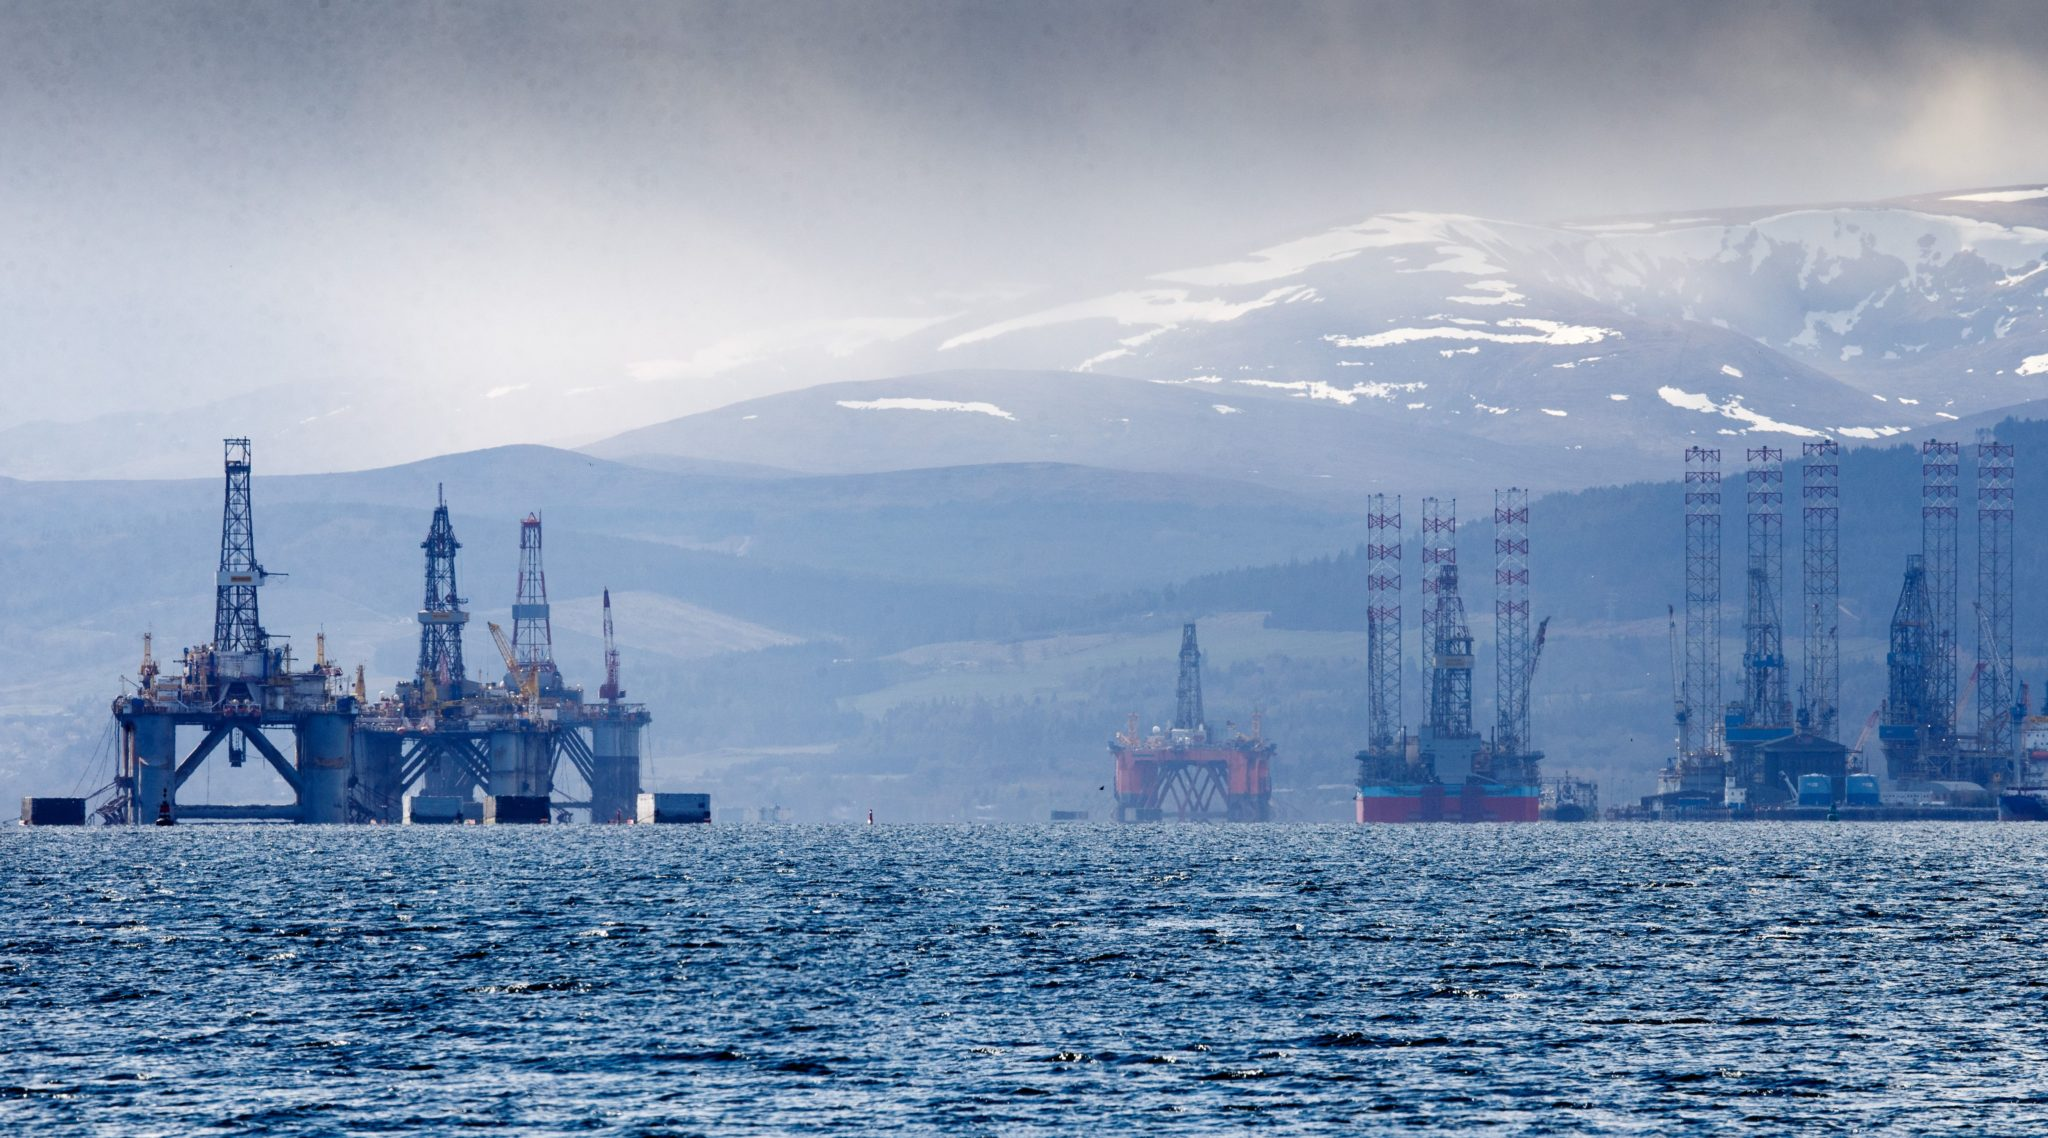 UK govt oil revenues fall 70% as price crash and decommissioning take effect